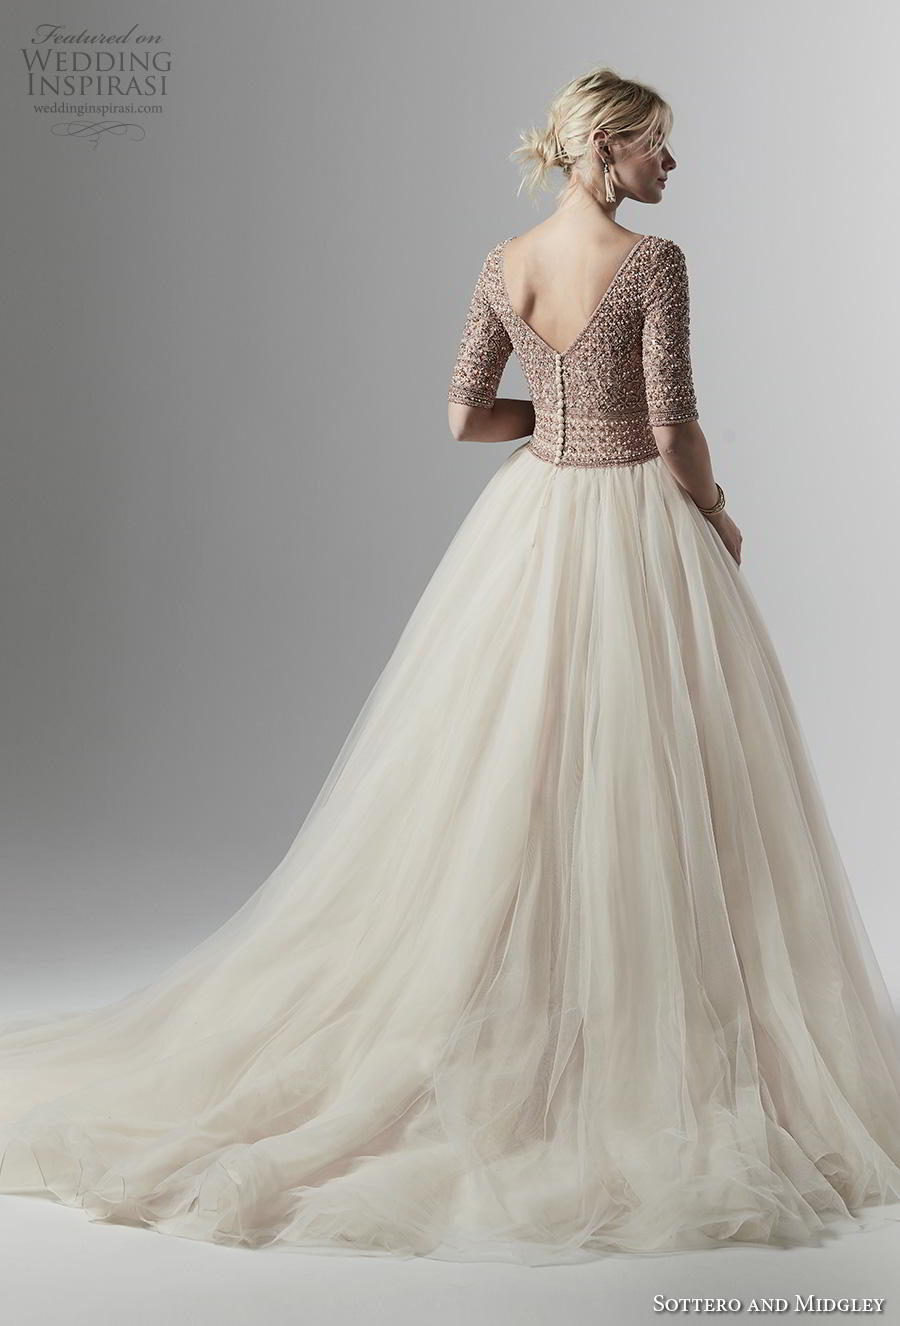 sottero and midgley fall 2019 bridal half sleeves bateau neck heavily embellished bodice tulle skirt princess ivory ball gown a  line wedding dress v back chapel train (10) bv